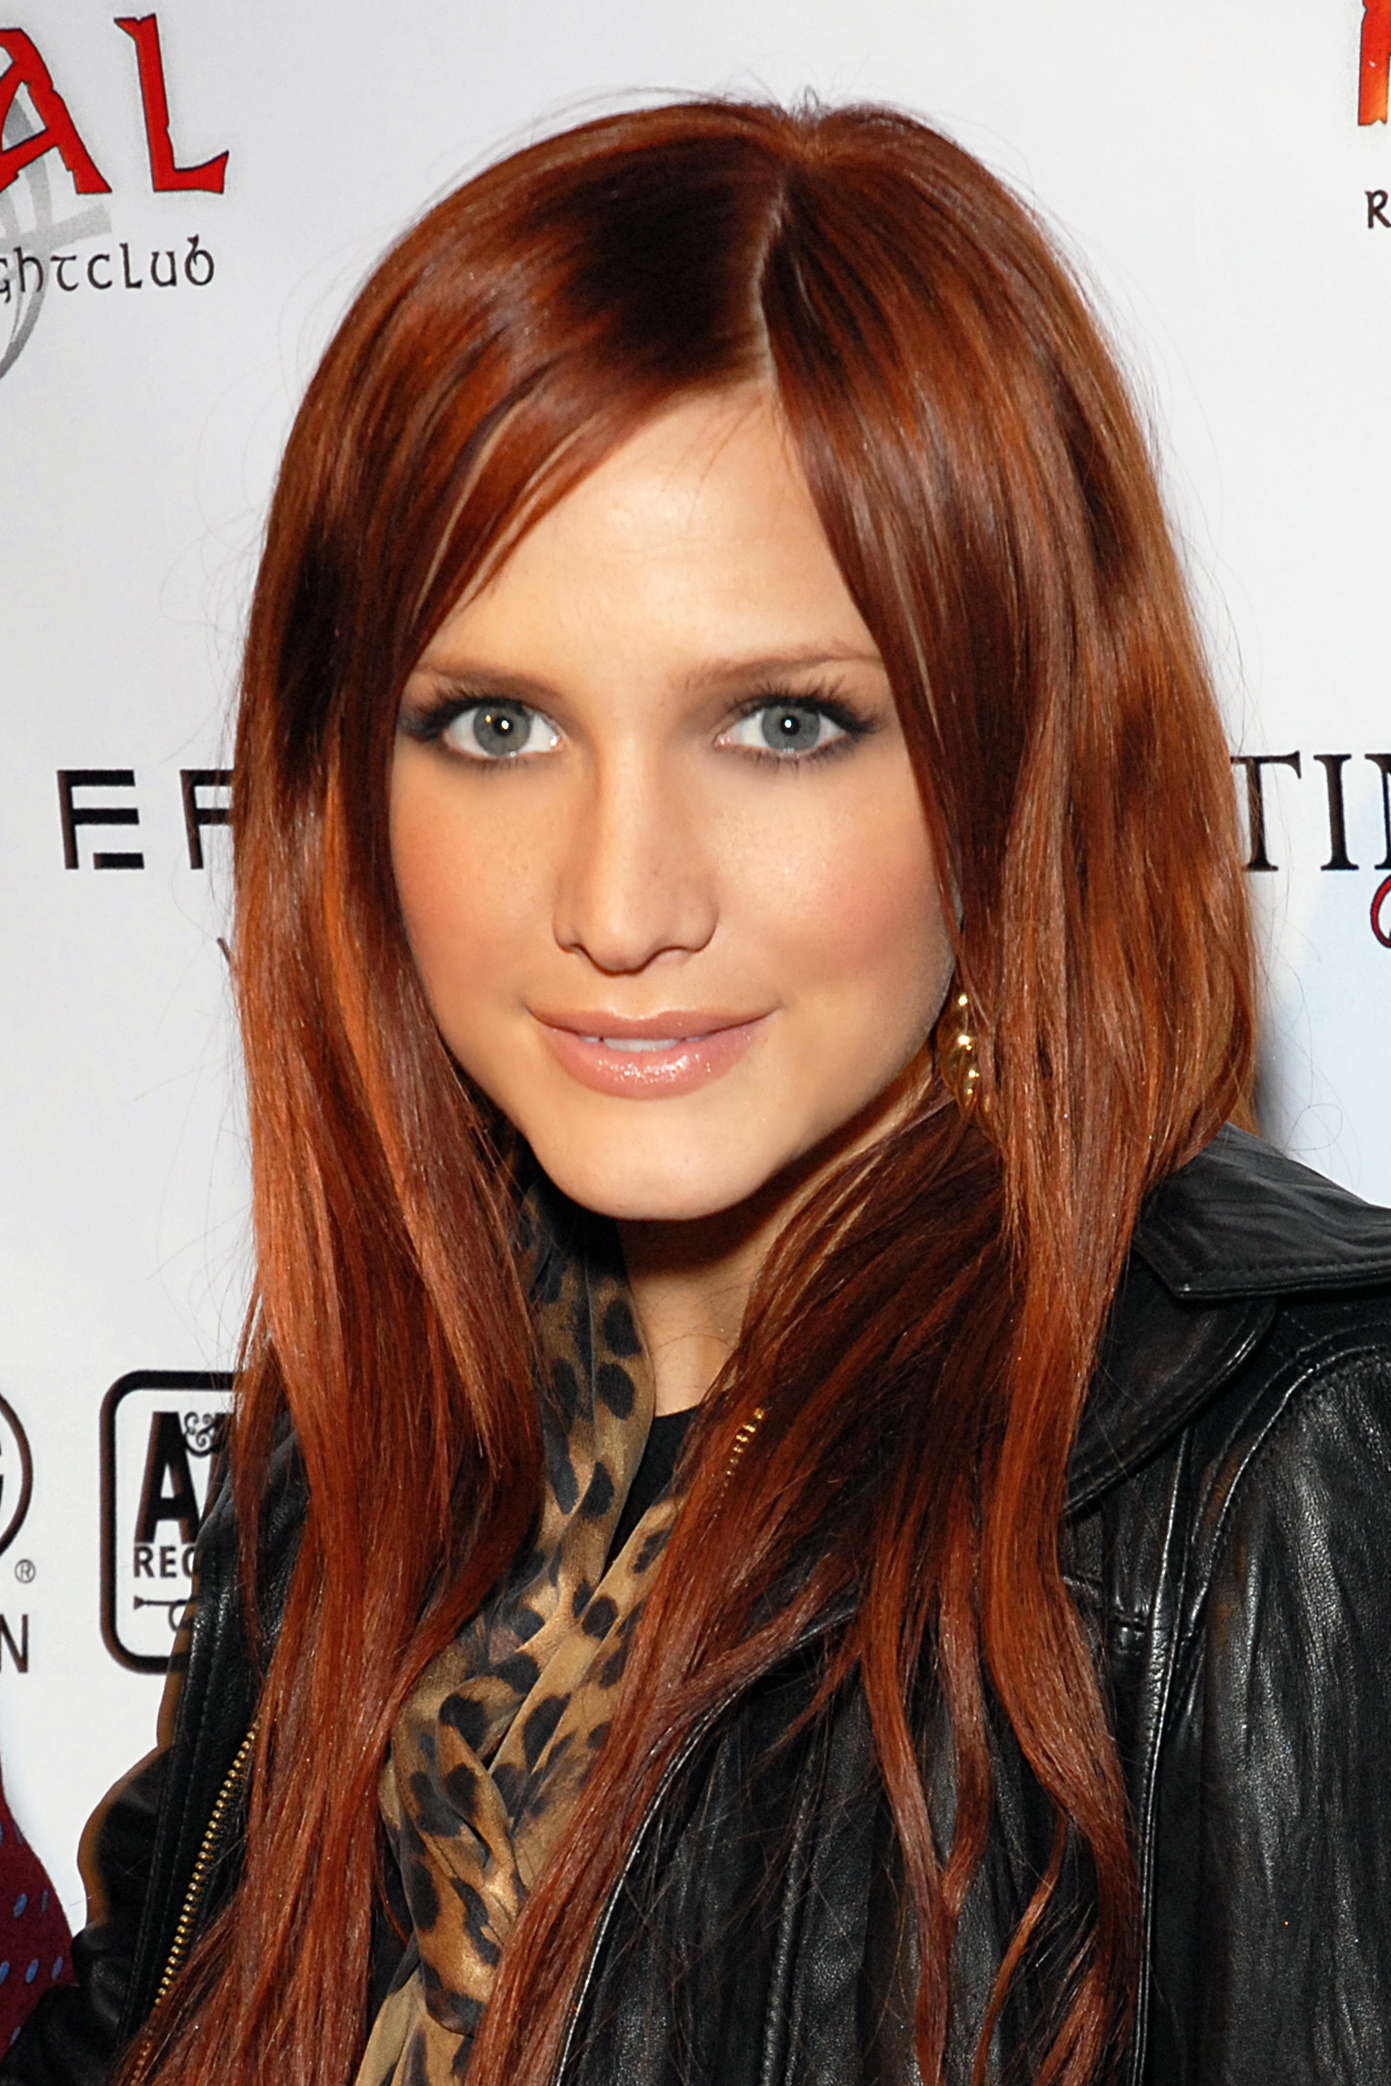 Description Ashlee Simpson 2008 jpgAshlee Simpson